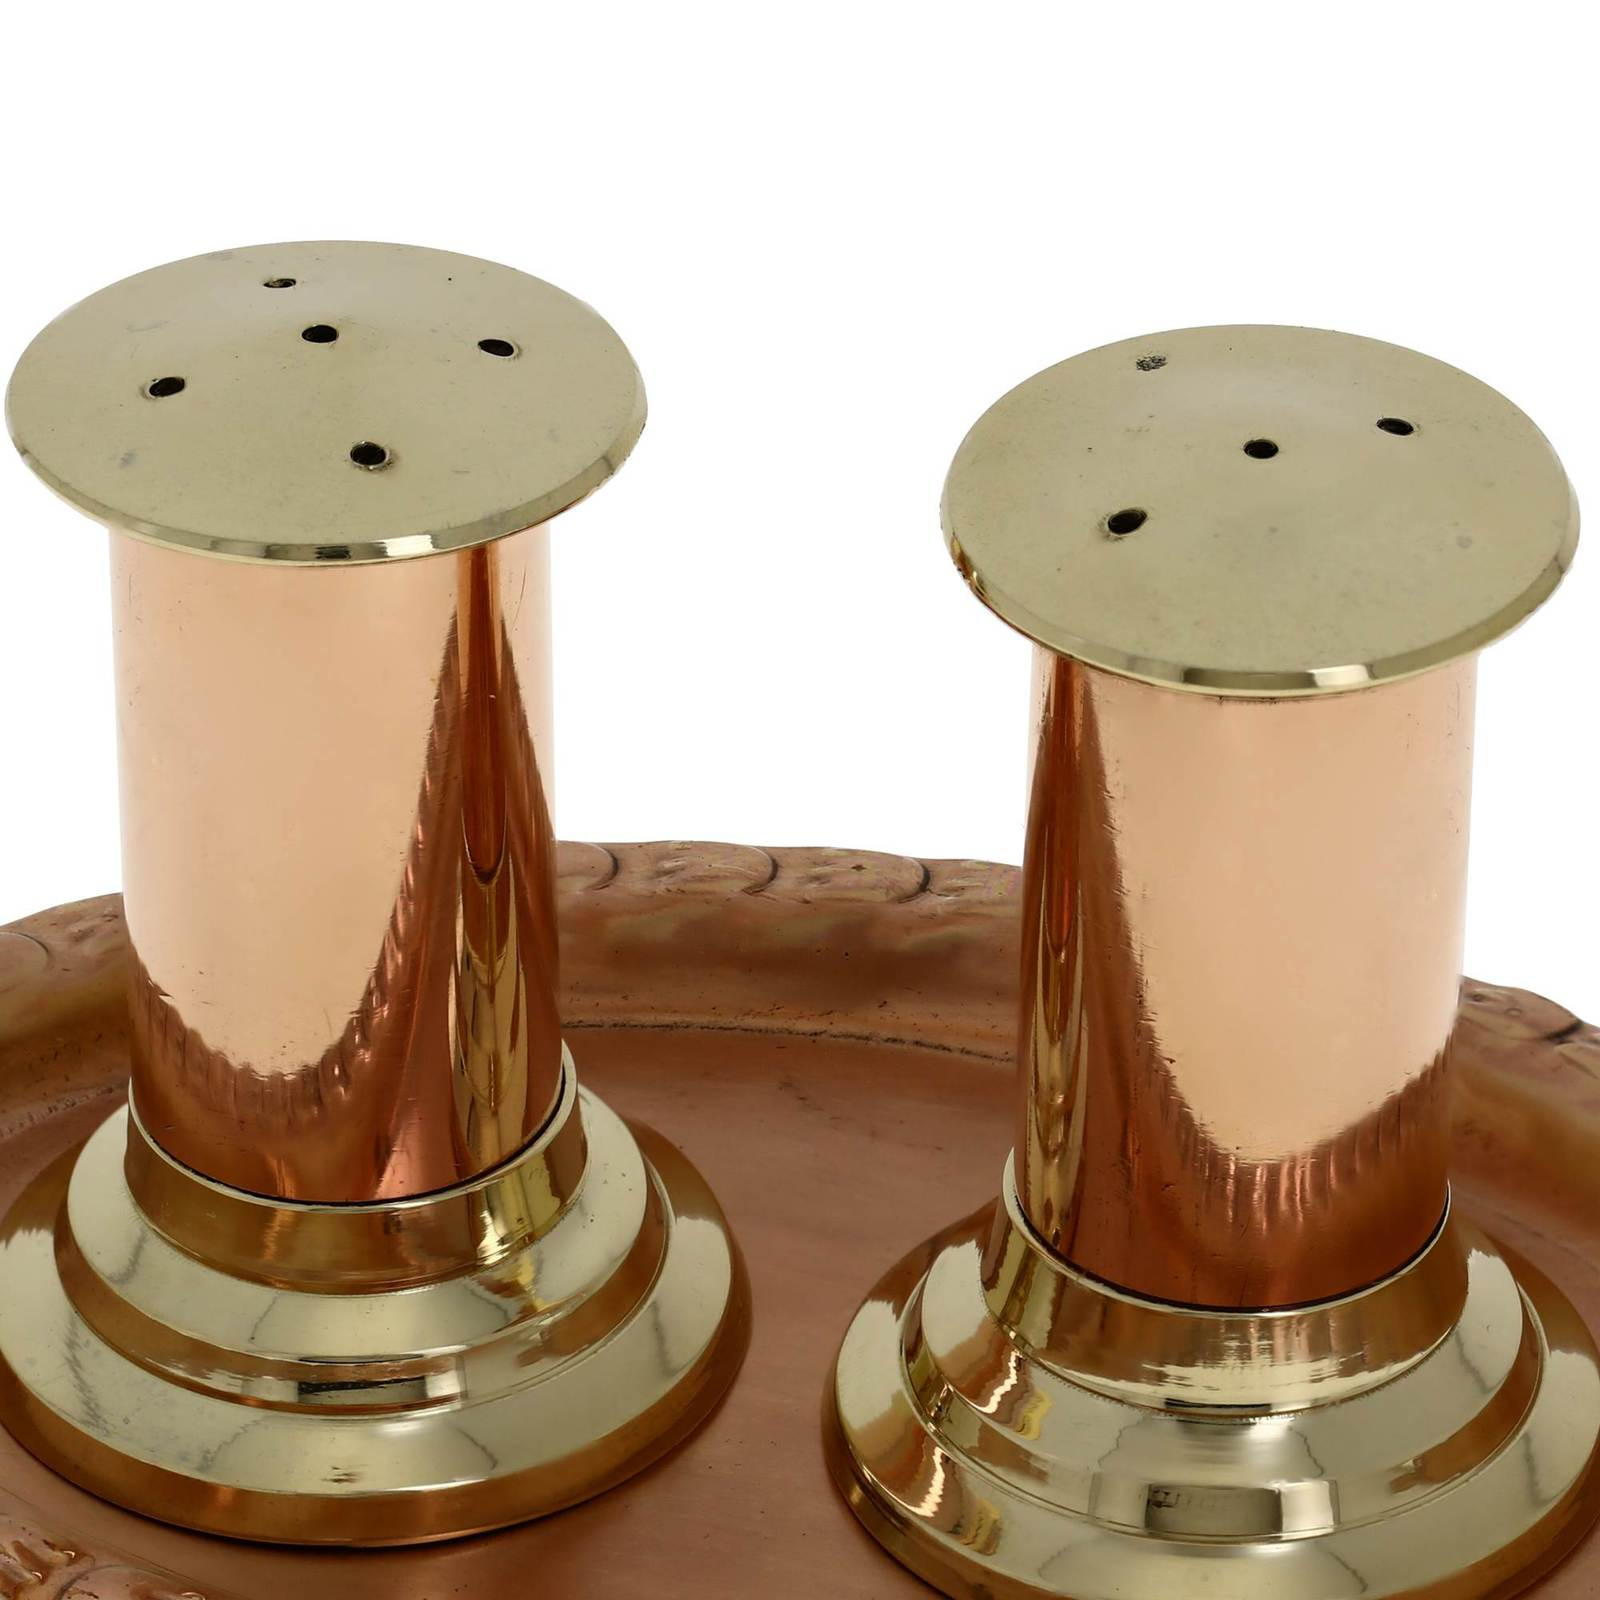 Handmade Gifts Copper Salt And Pepper Shaker And Serving